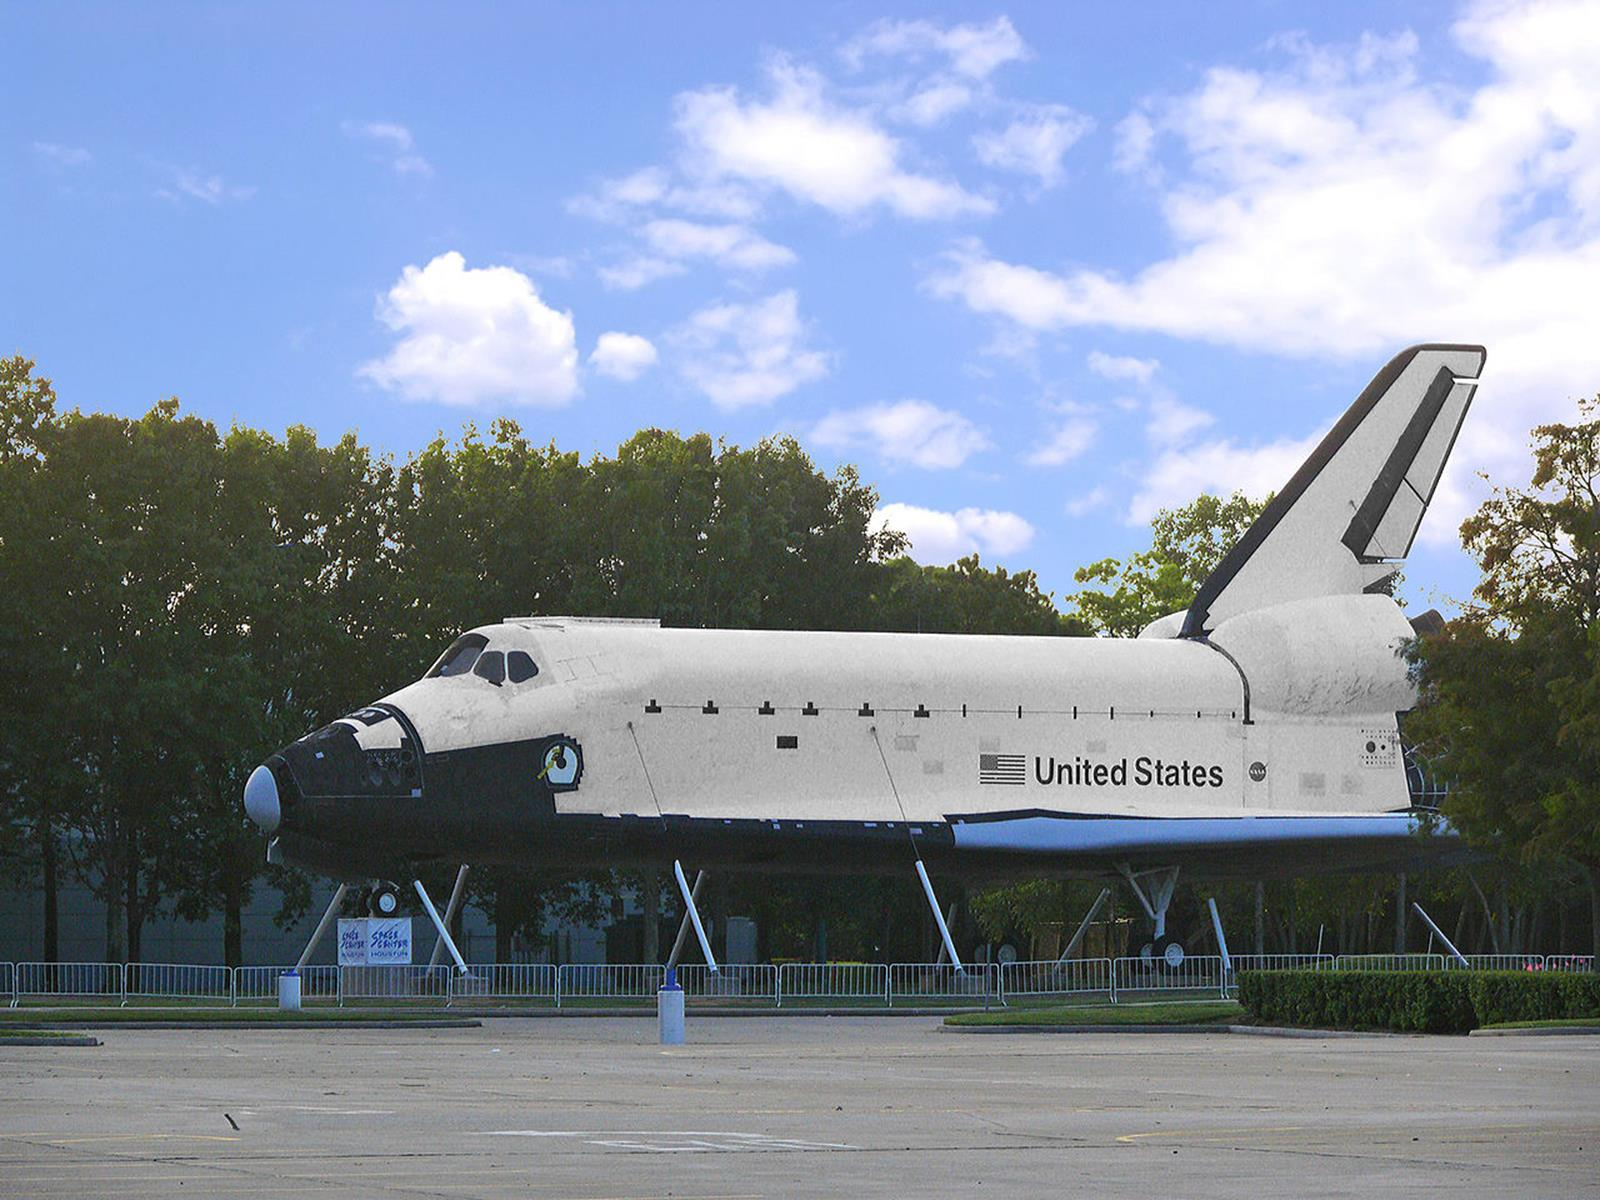 Space Shuttle Replica at the Space Station